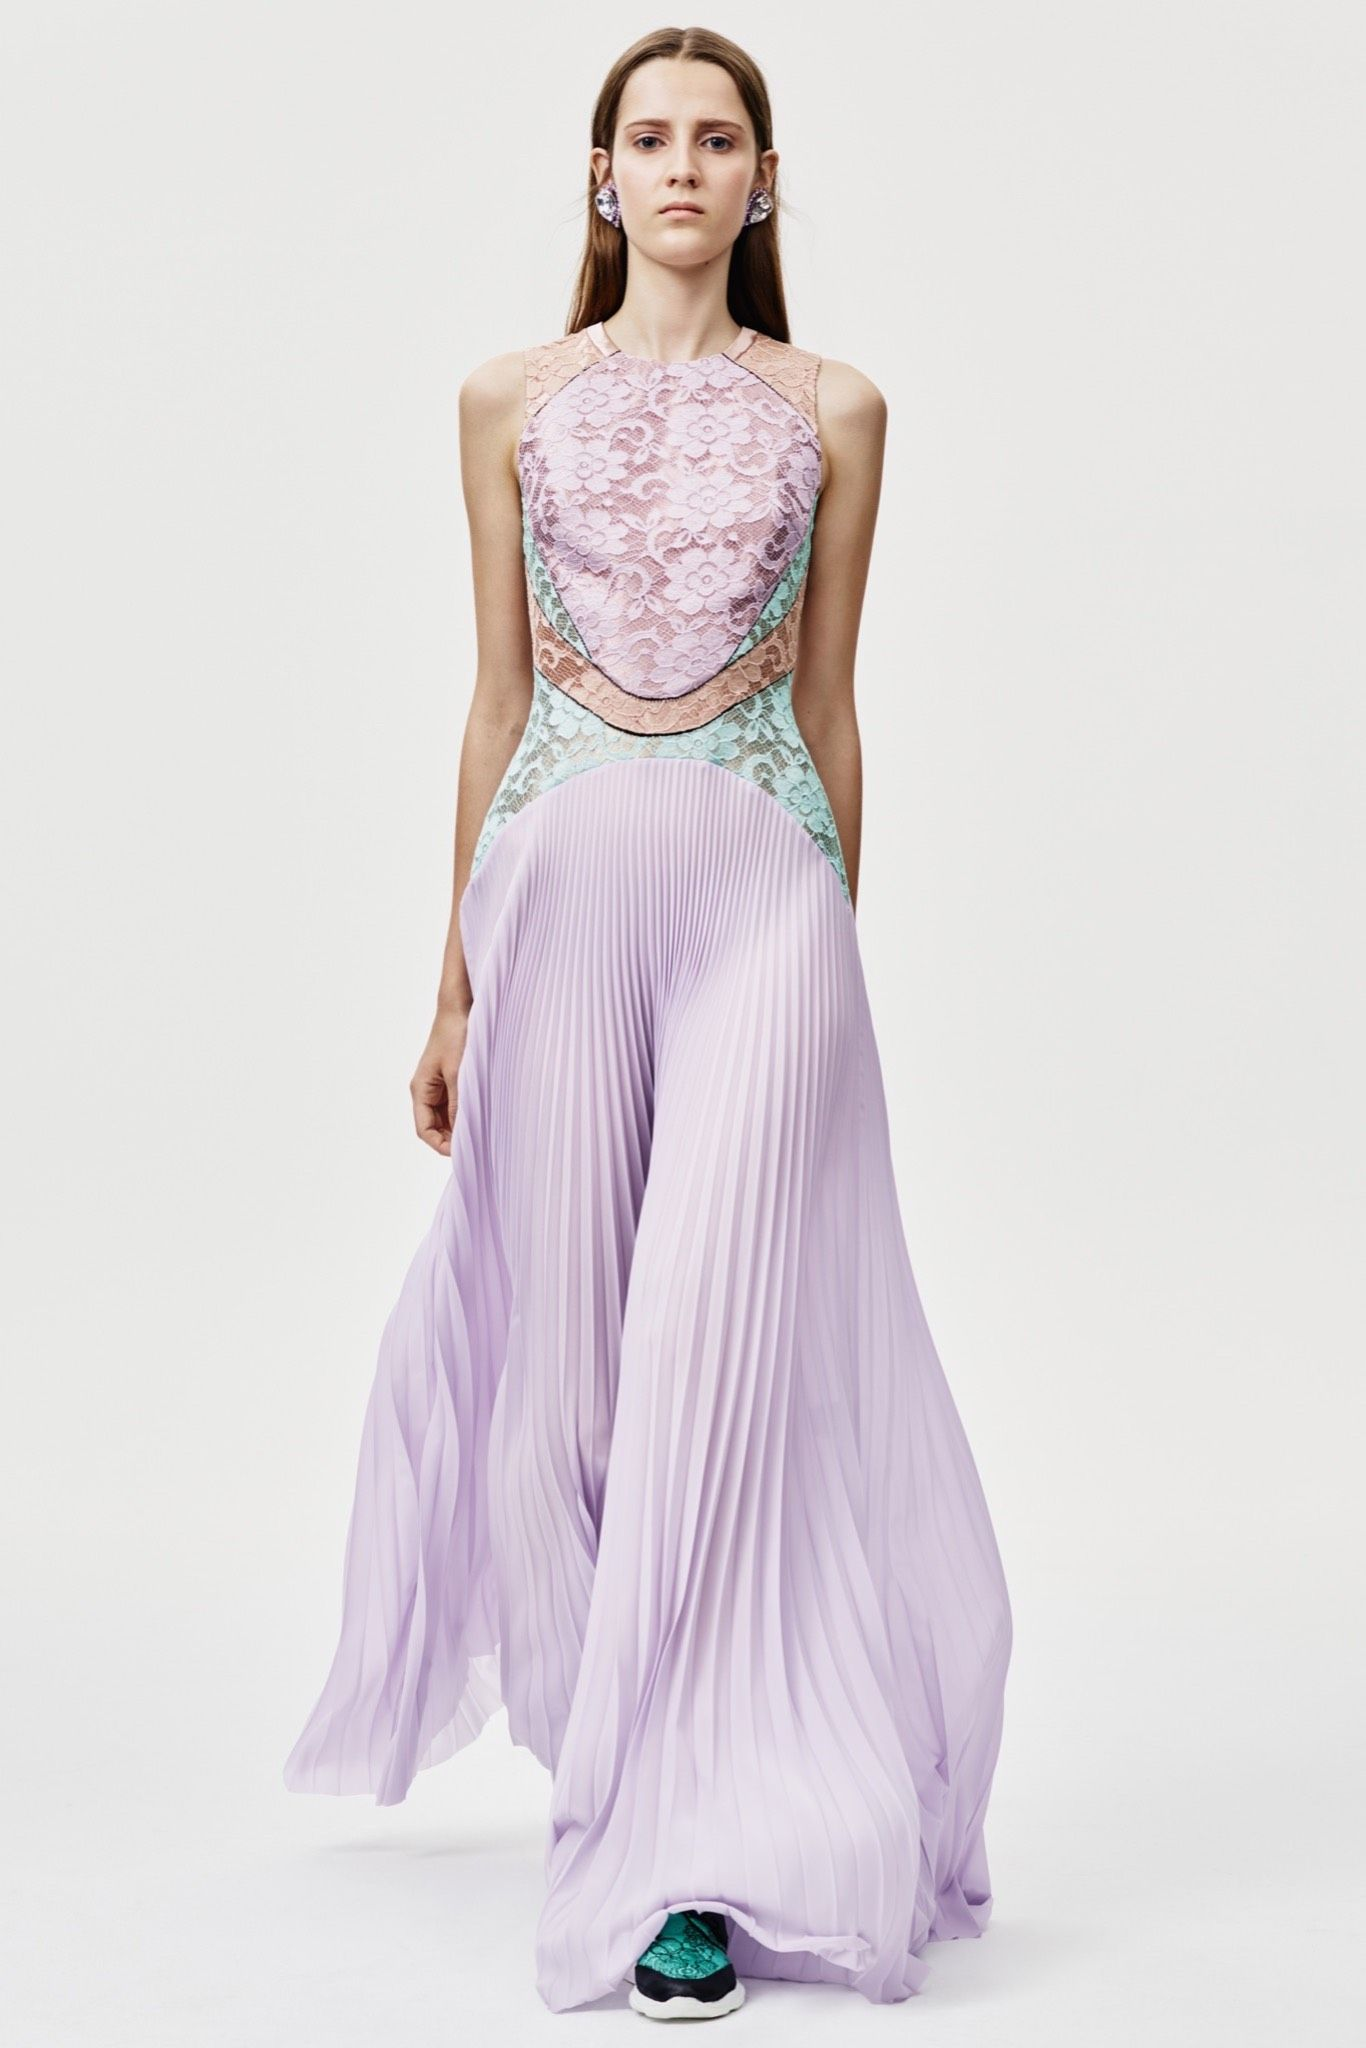 Christopher Kane Resort 2016 -this is stunning can't wait to see it on a red carpet or whatever